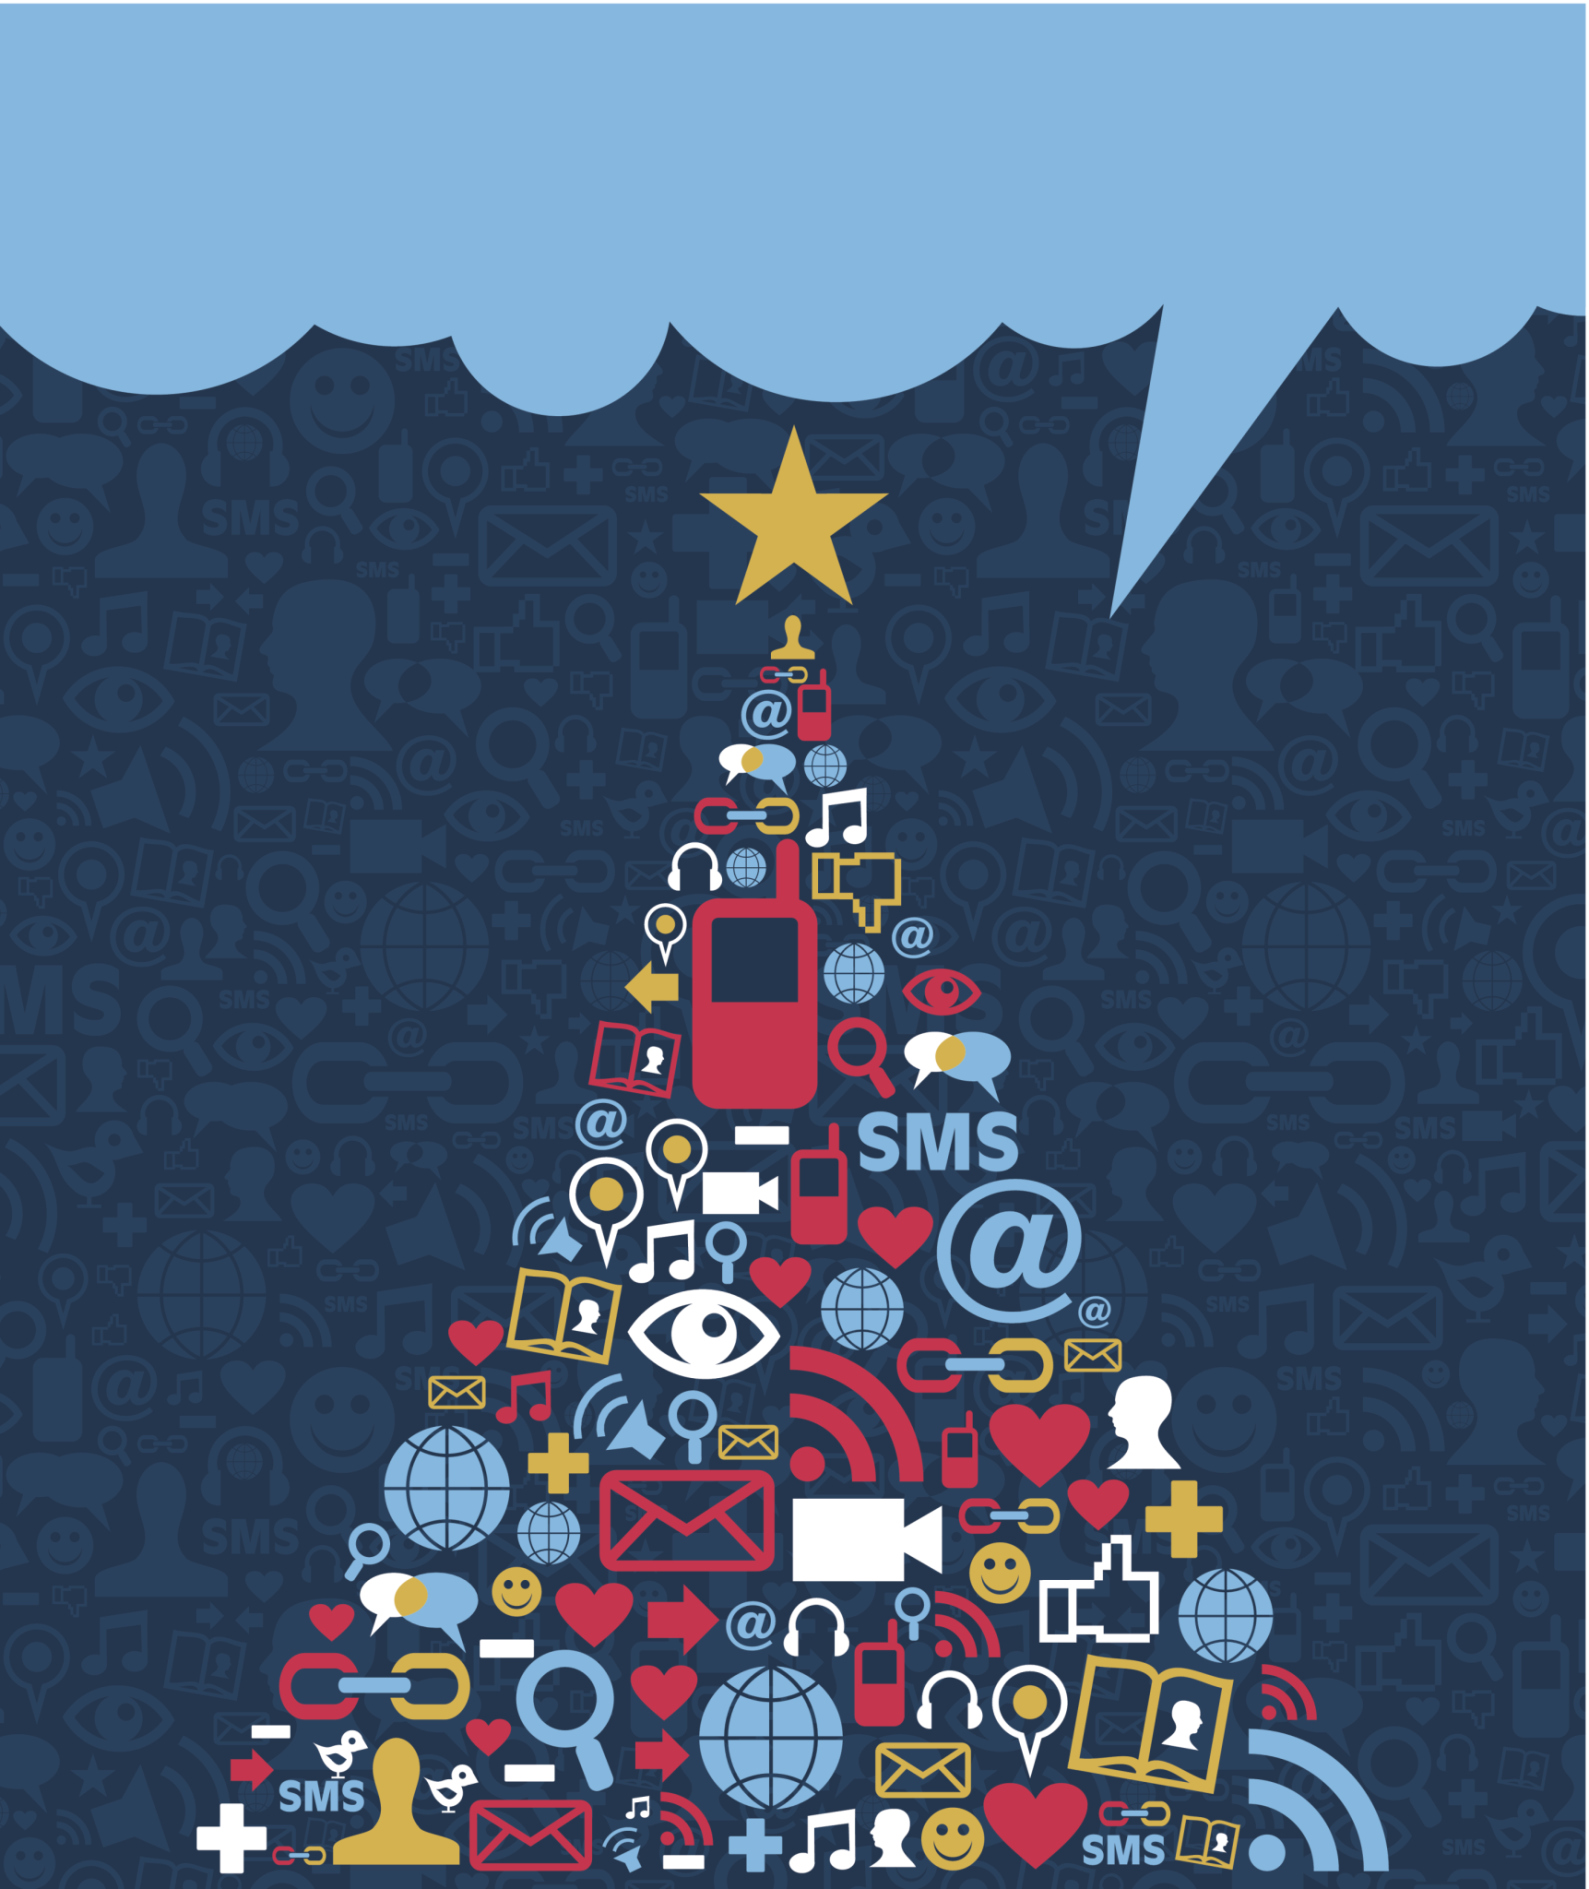 Nothing says holiday magic like smartphones, emails and hashtags. (Thinkstock)